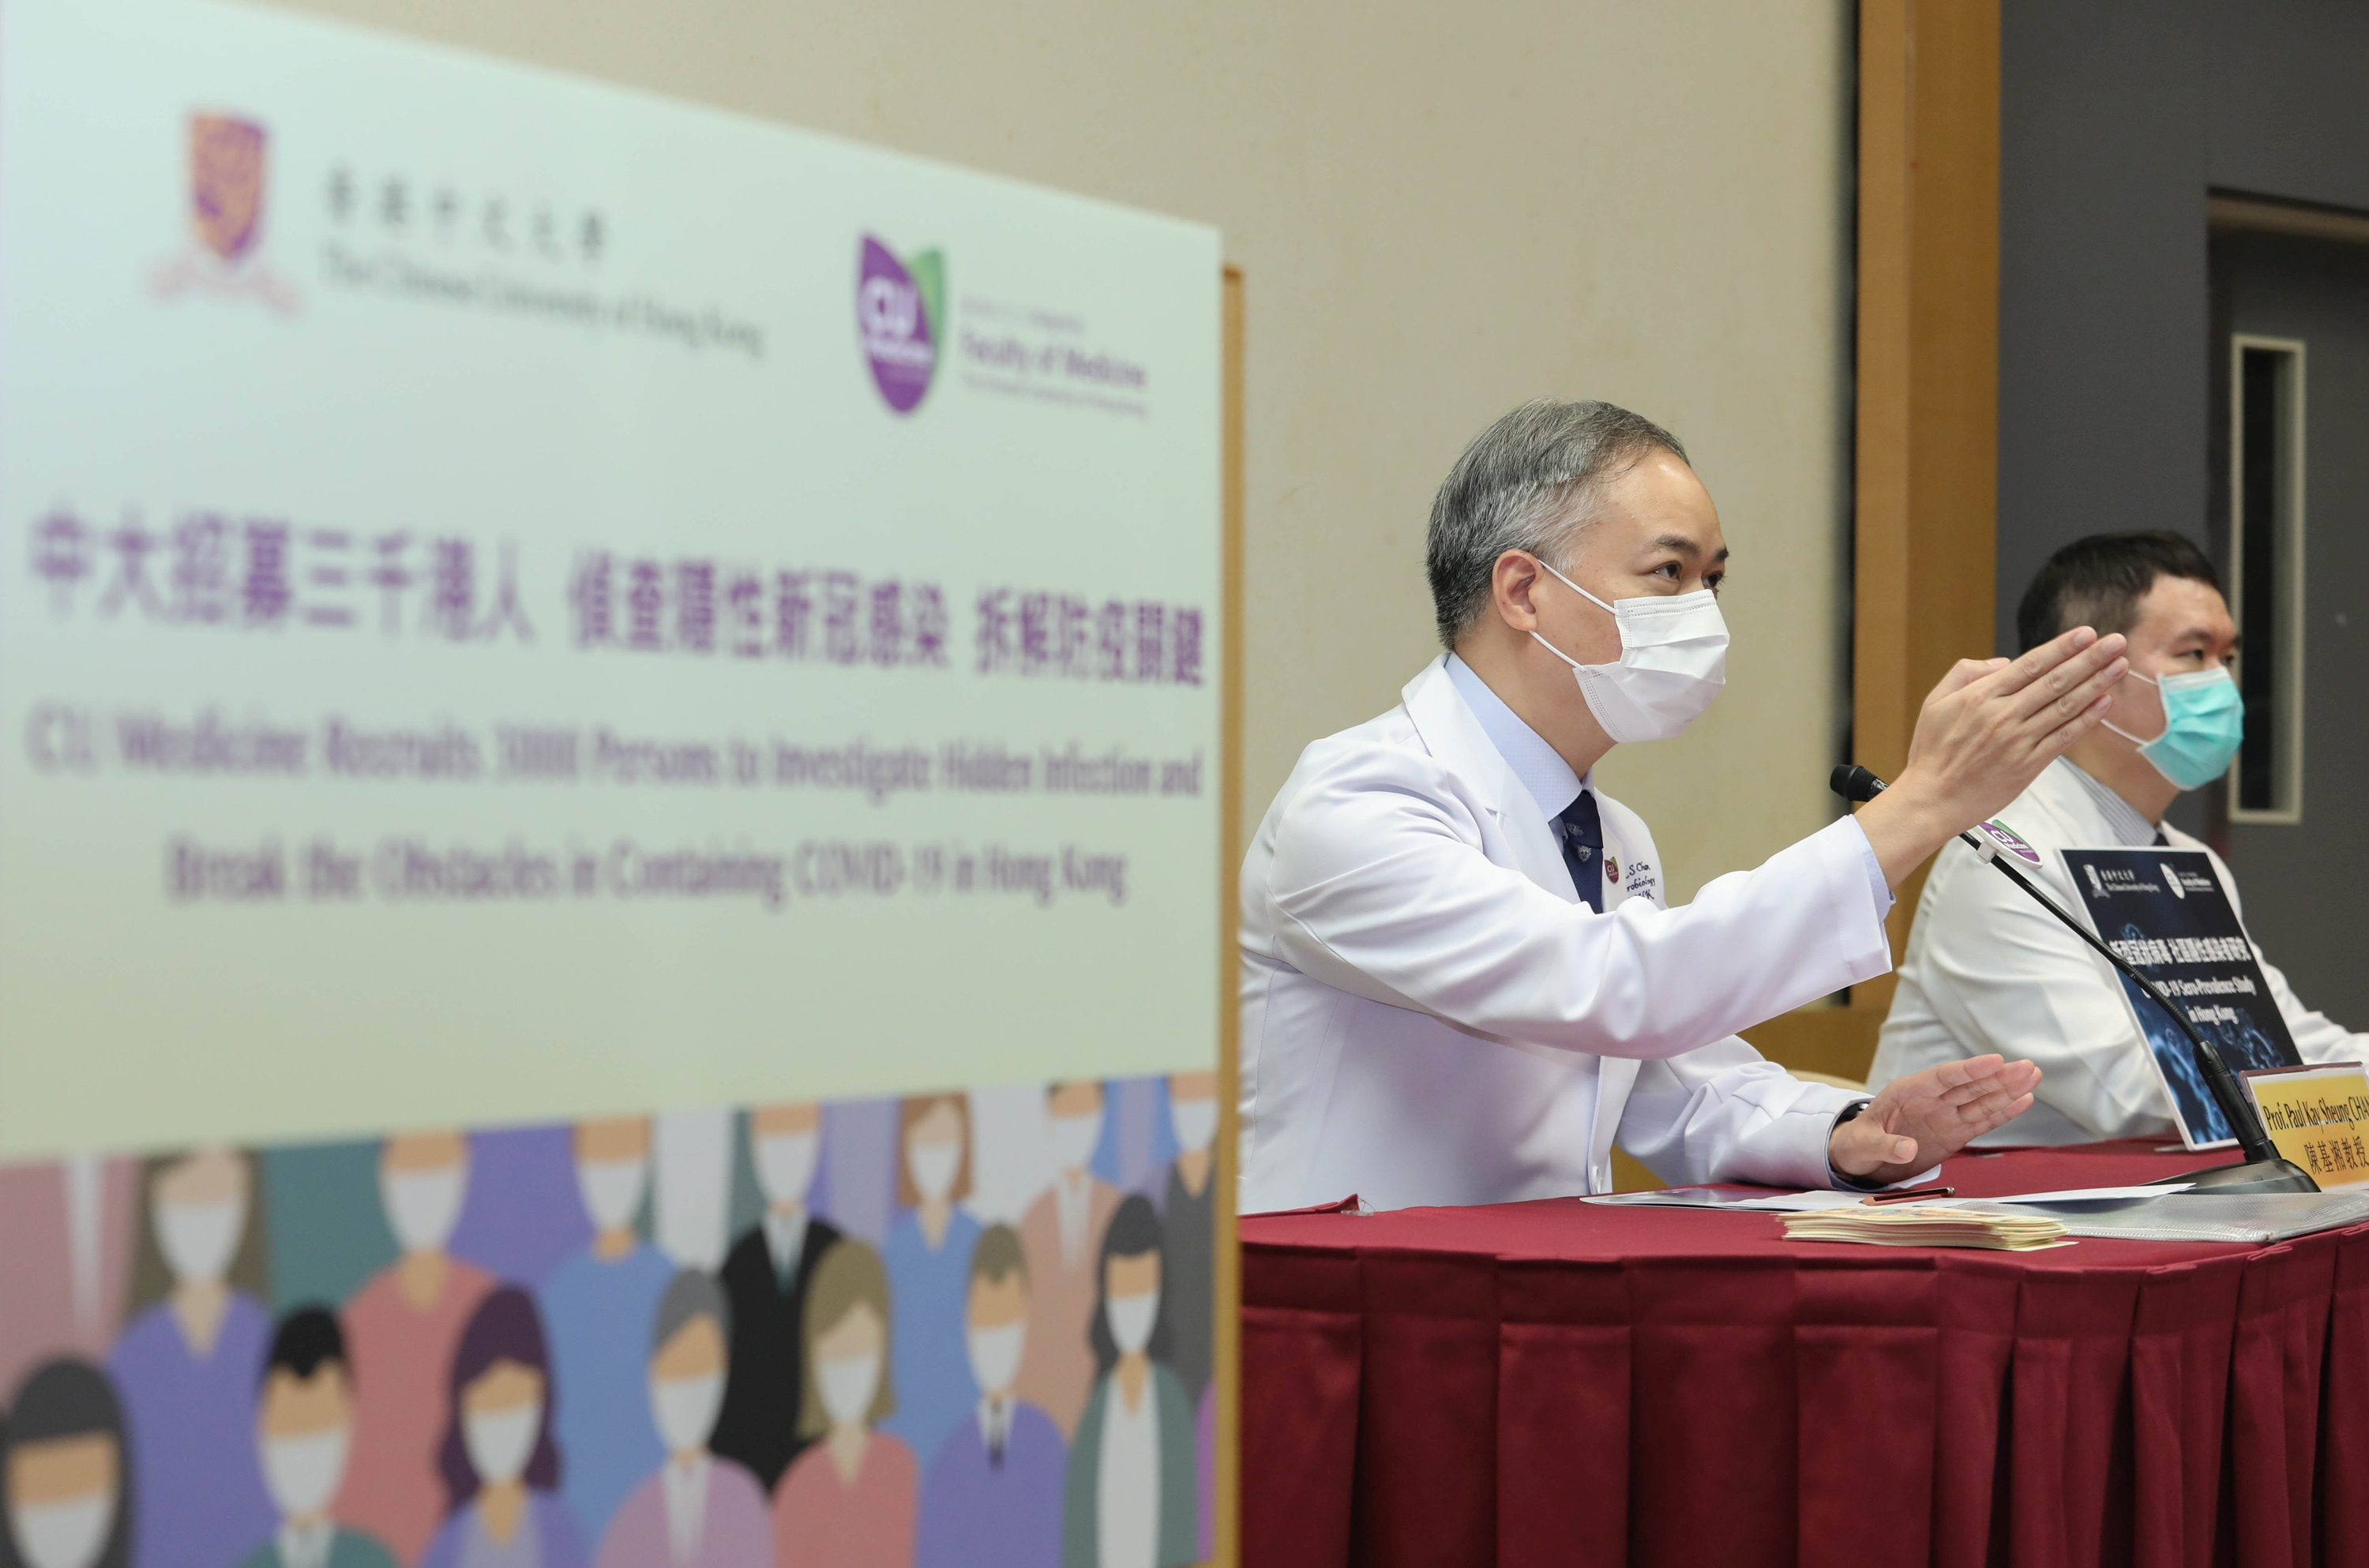 Professor Paul CHAN explains that study subjects are being tested if their bodies contain Immunoglobulin G (IgG) antibody, which is to detect if they have ever been infected, but not as a tool to test current infection.